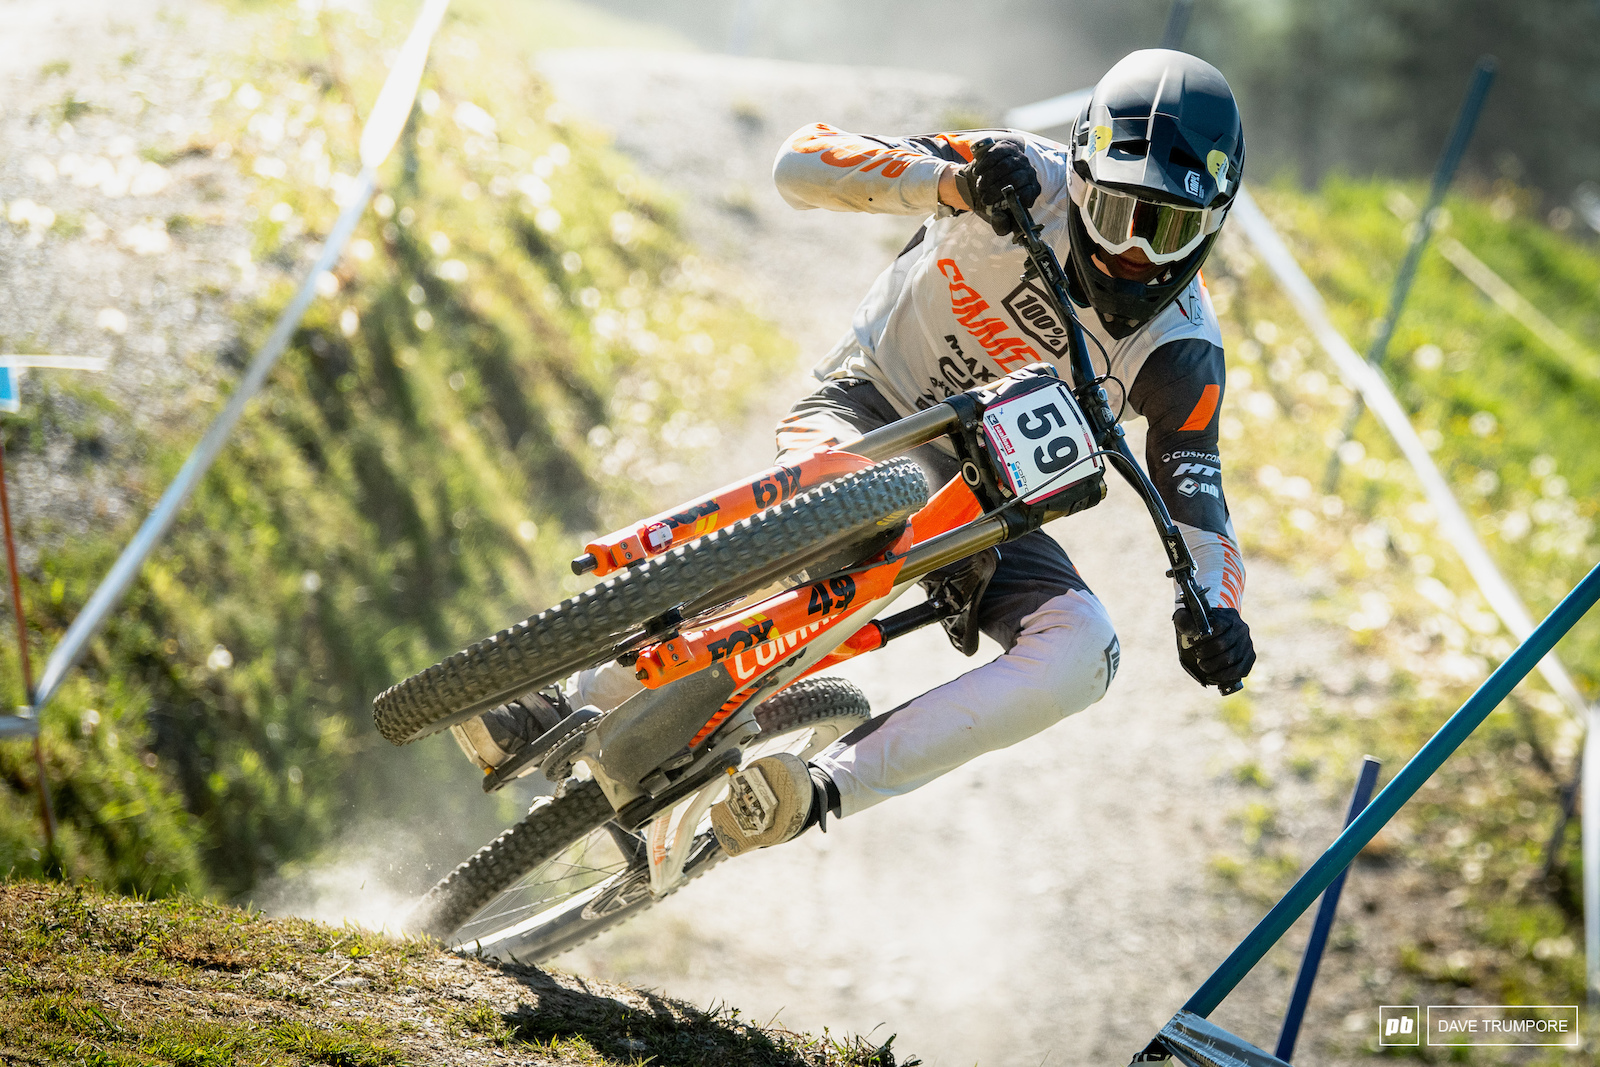 Hugo Frixtalon s front wheel kicks up the dust as he scrubs one of the fastest jumps on the lower motor way section.